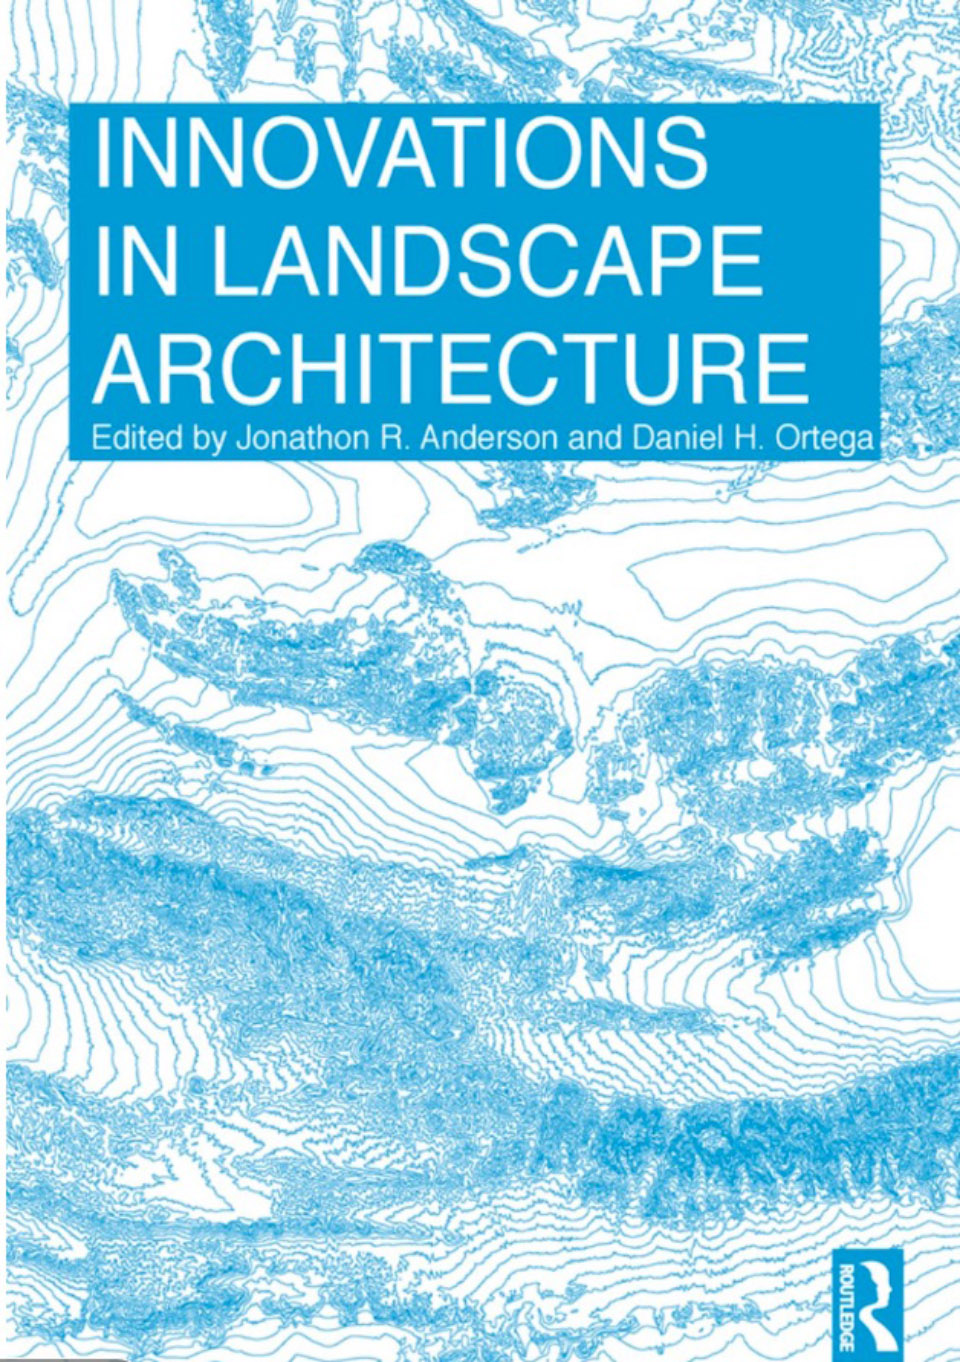 BOOK_InnovationsInLandsapeArchitecture_960